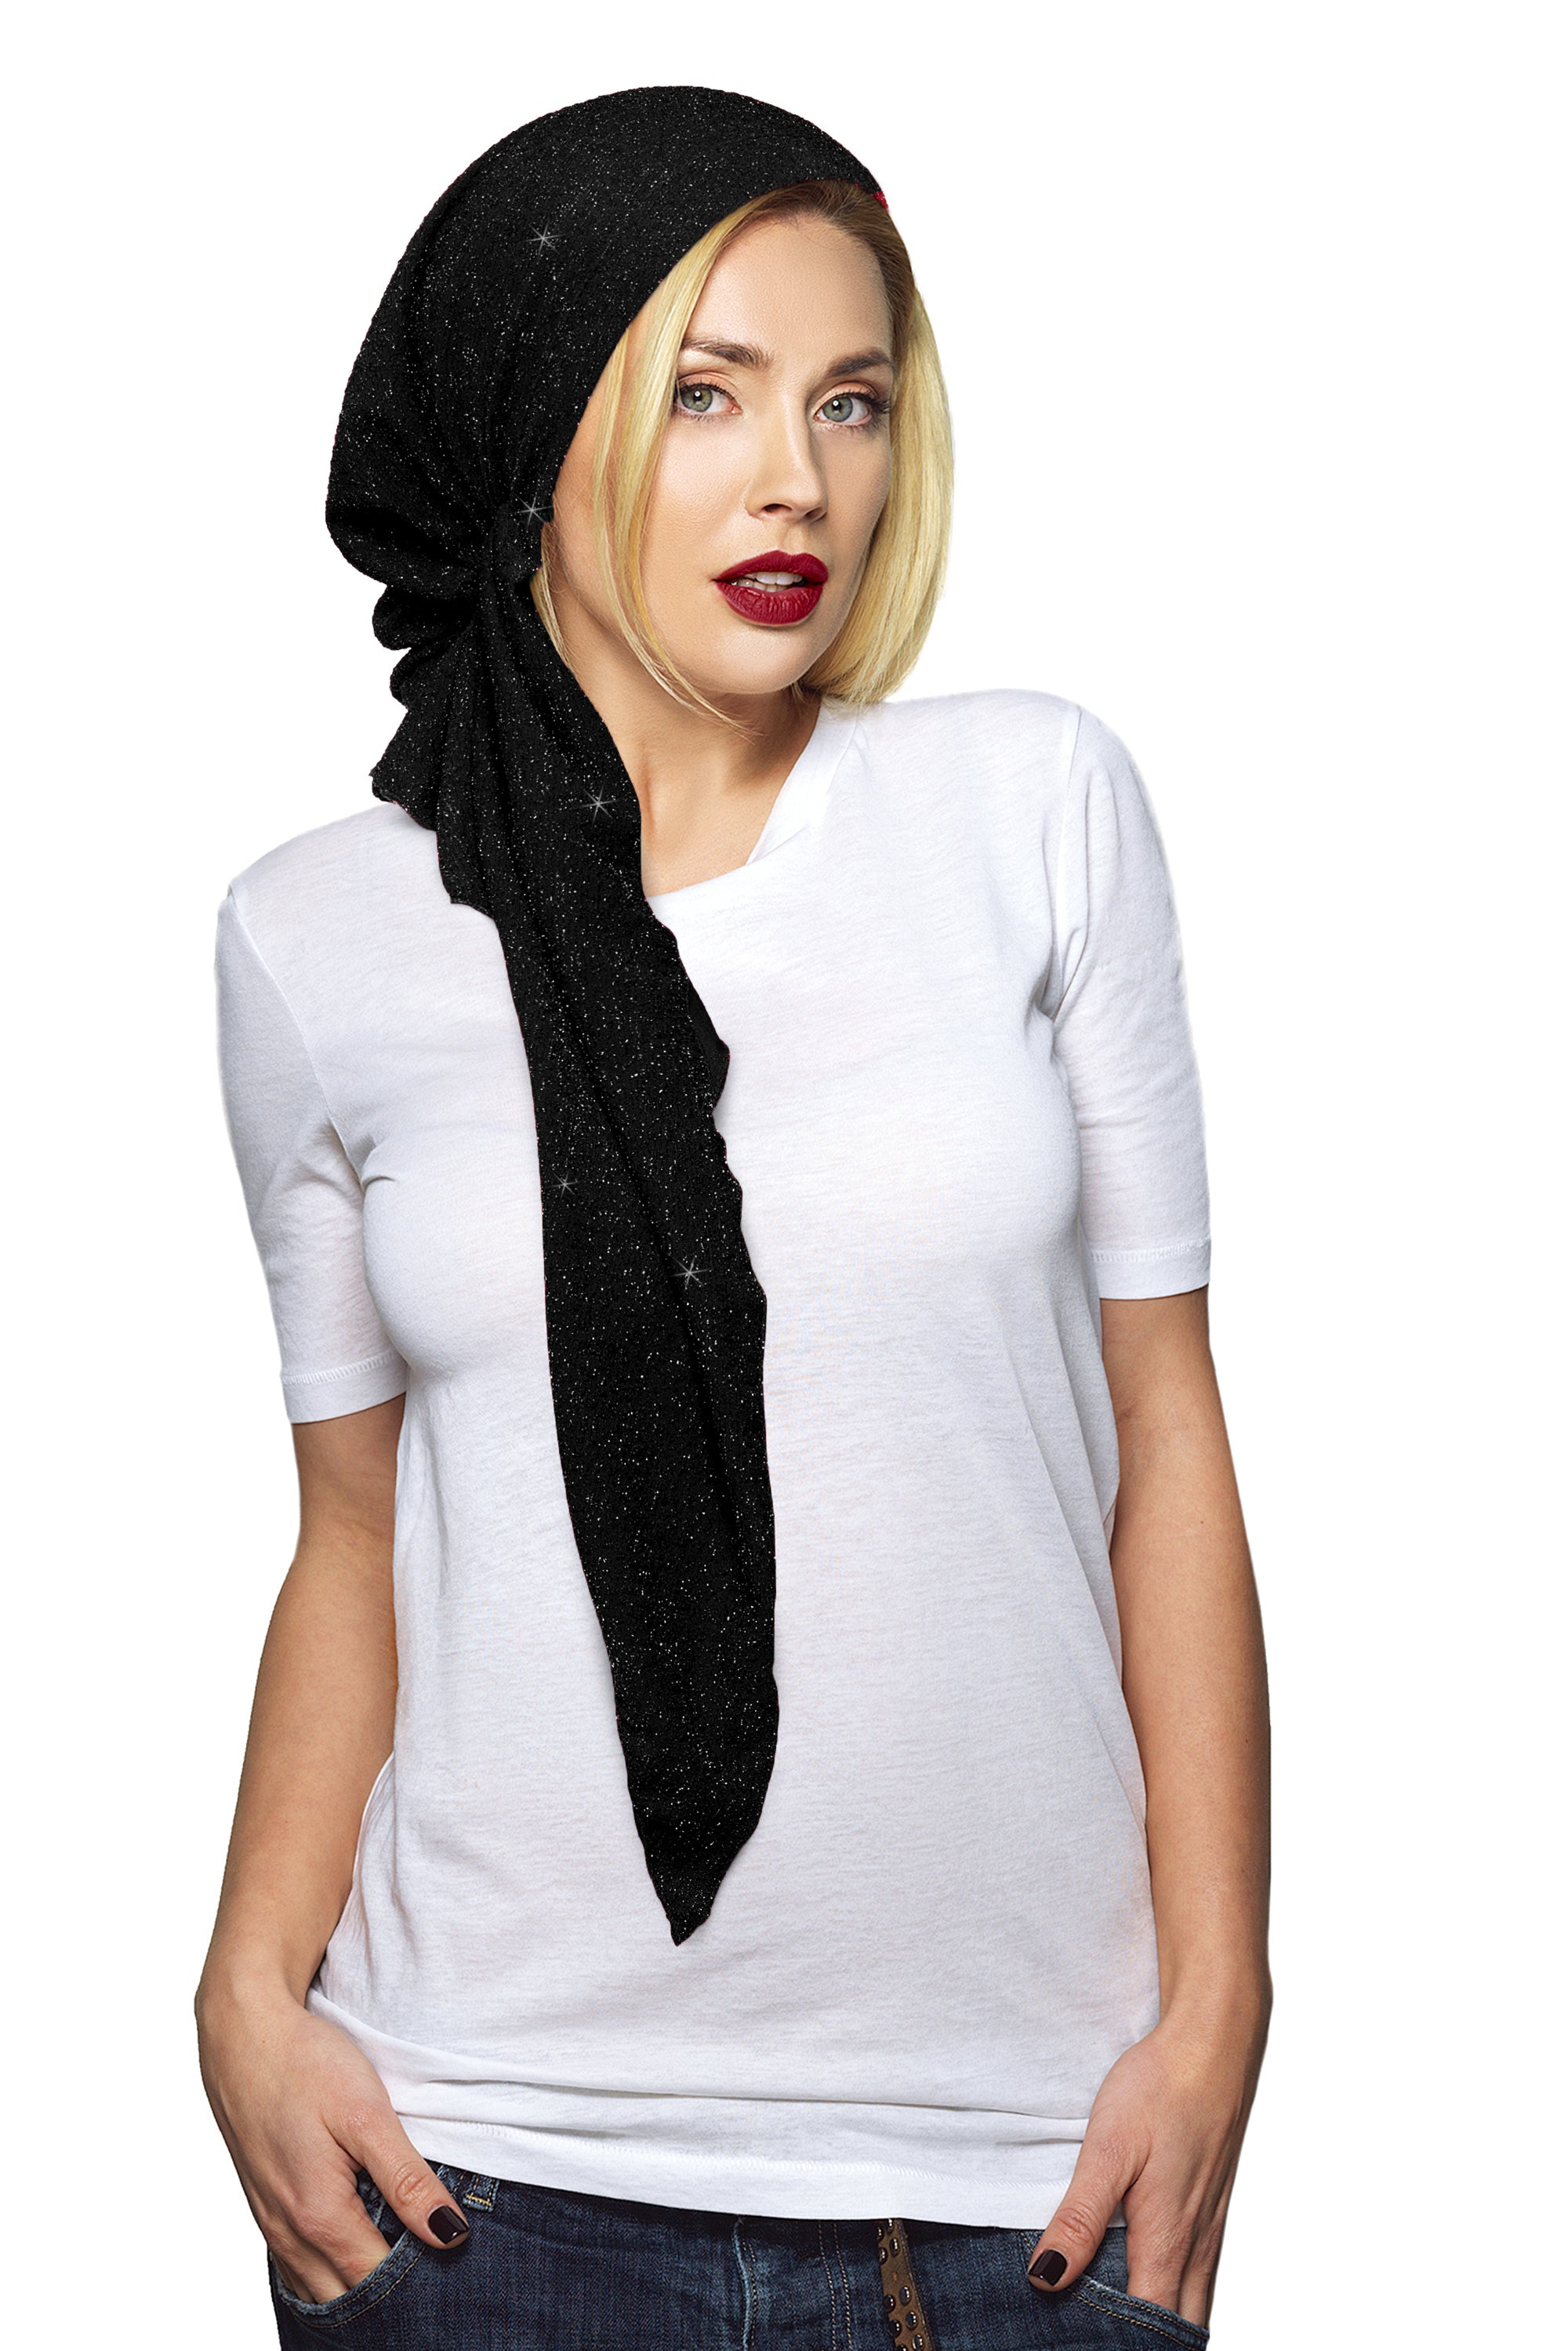 Long black boho chic headscarf with sparkle